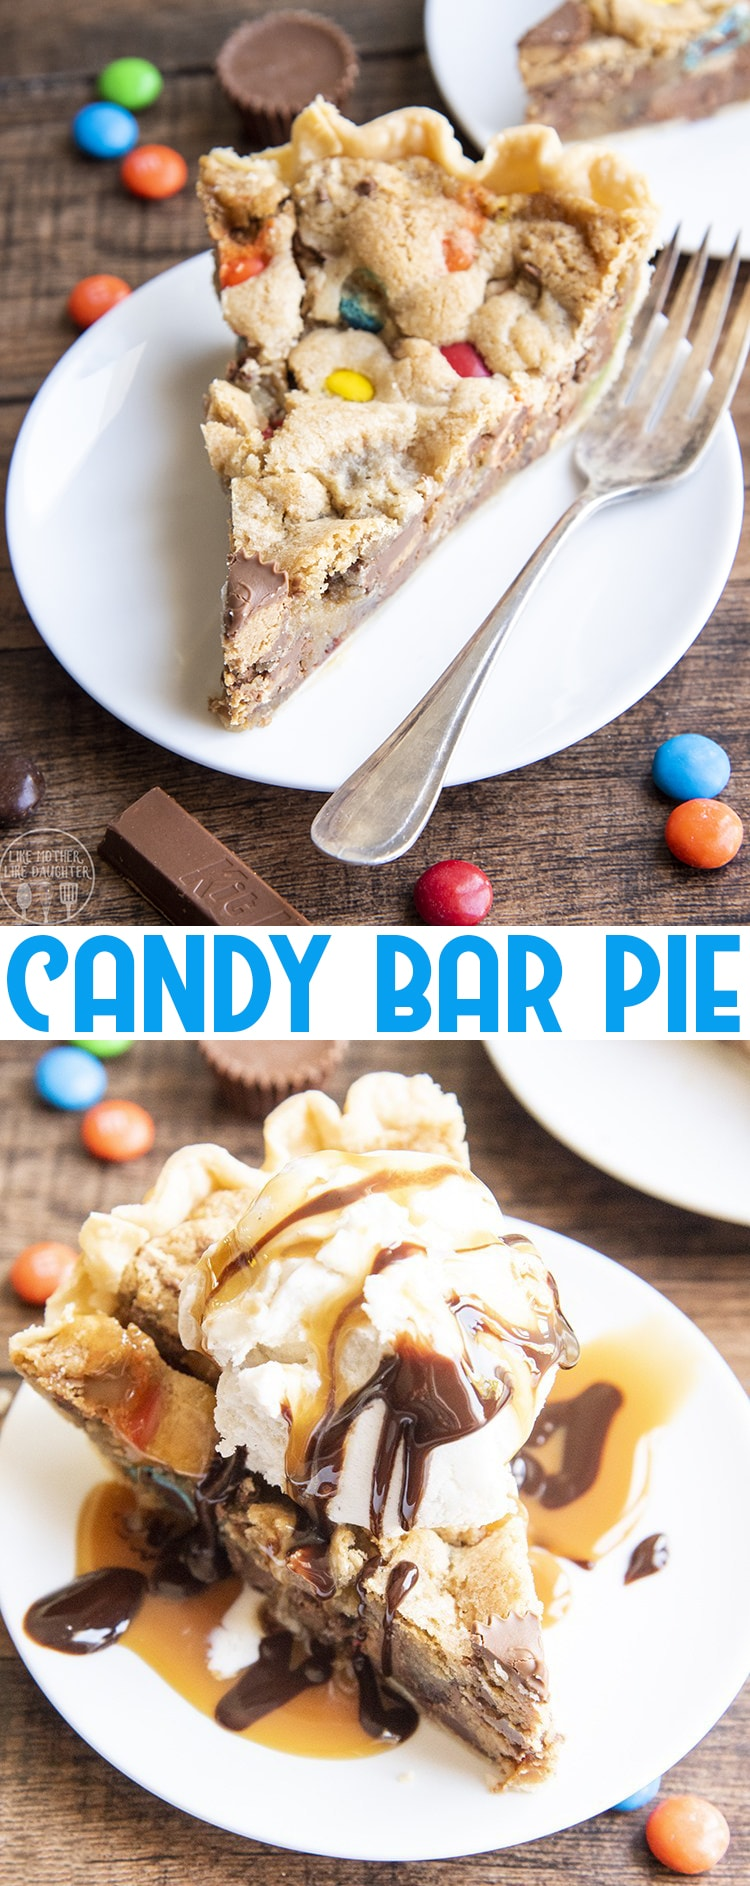 This candy bar pie is the perfect dessert to use up leftover candy. It's got a buttery pie crust, with a brown sugar cookie filling, loaded with your favorite chocolate candies!